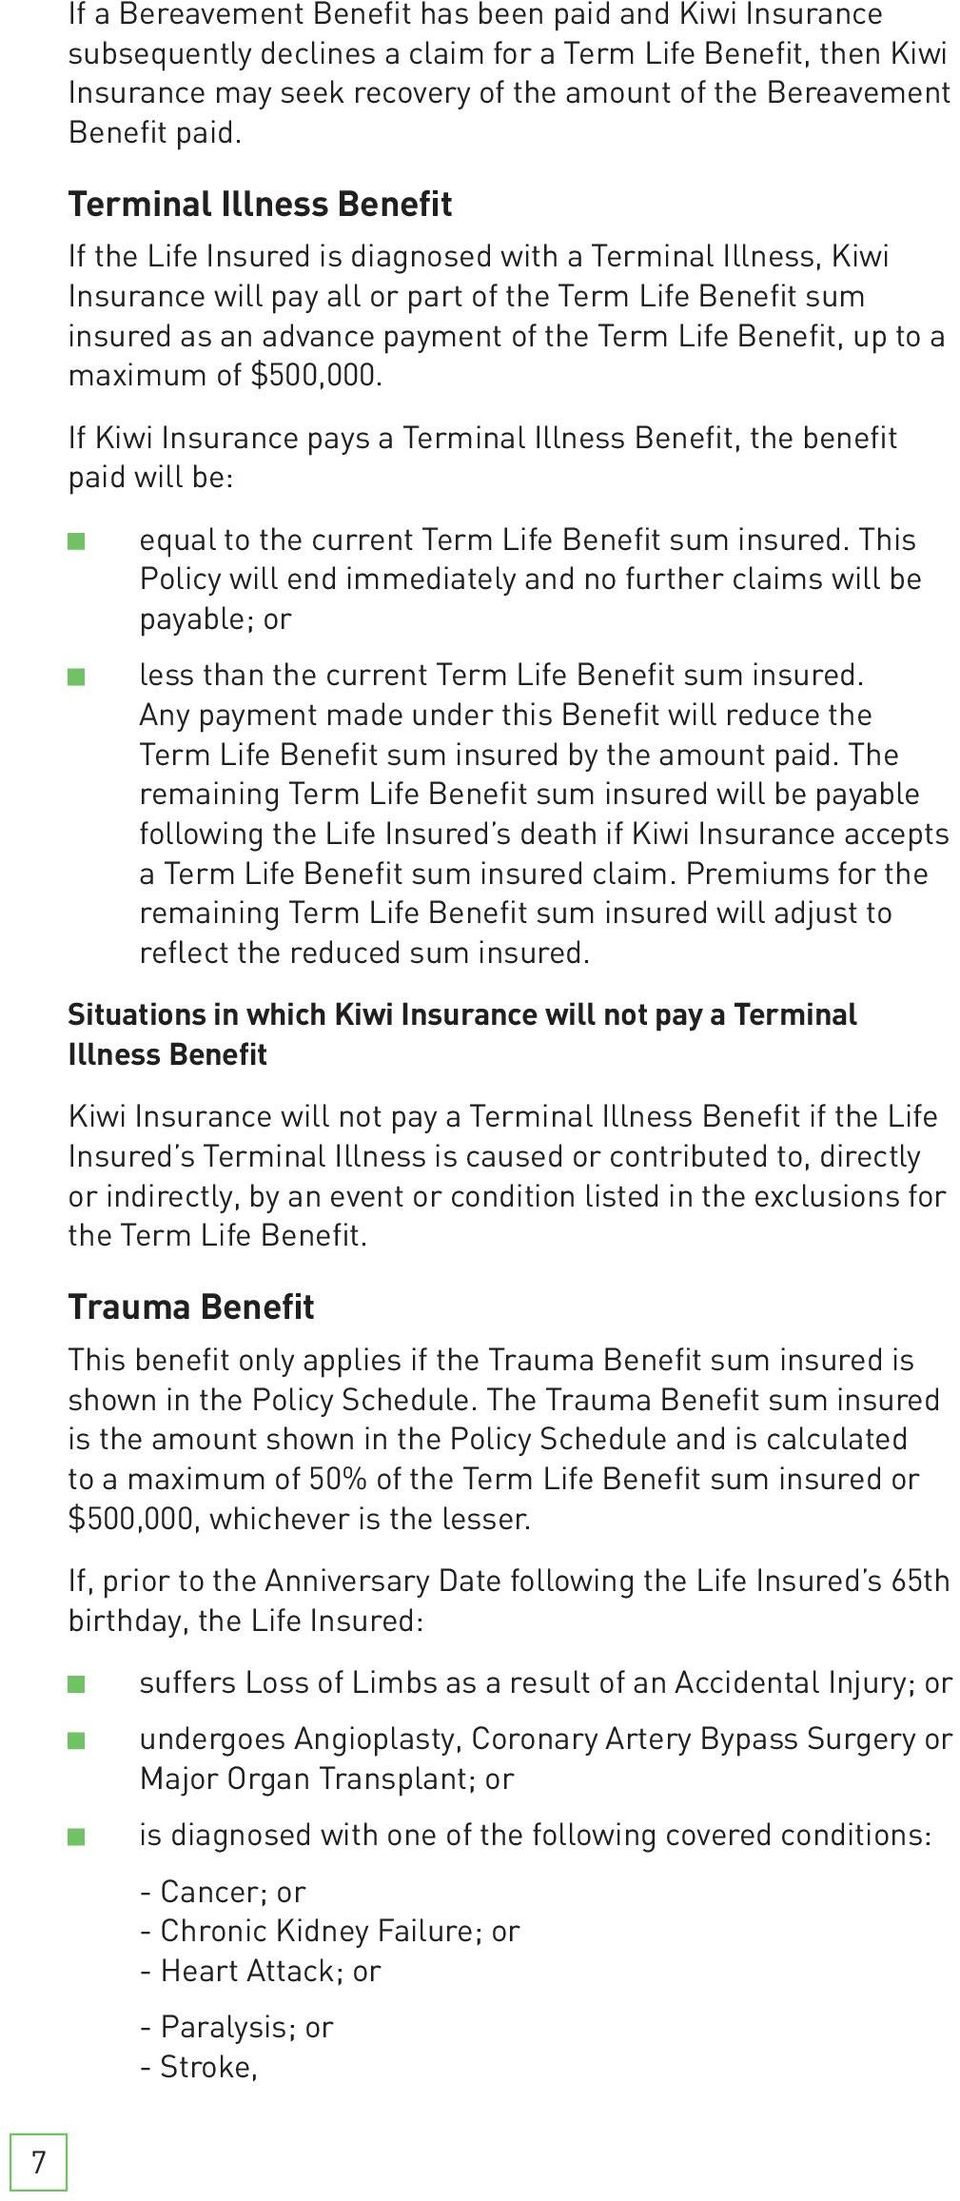 Benefit, up to a maximum of $500,000. If Kiwi Insurance pays a Terminal Illness Benefit, the benefit paid will be: equal to the current Term Life Benefit sum insured.